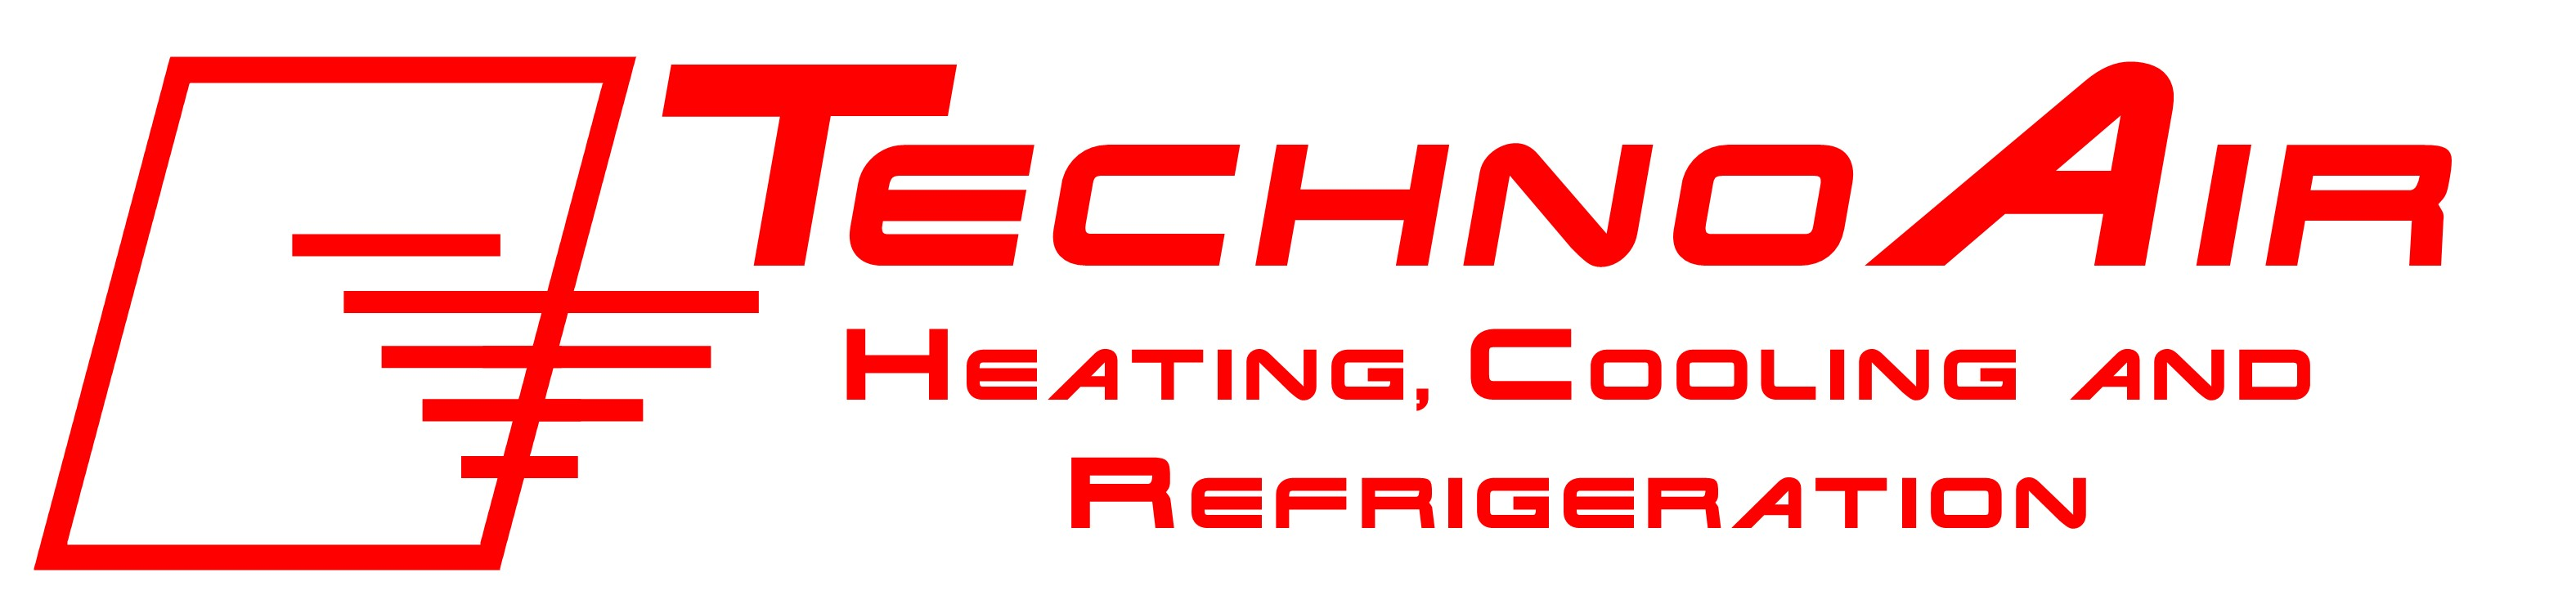 TechnoAir Heating, Cooling, and Refrigeration